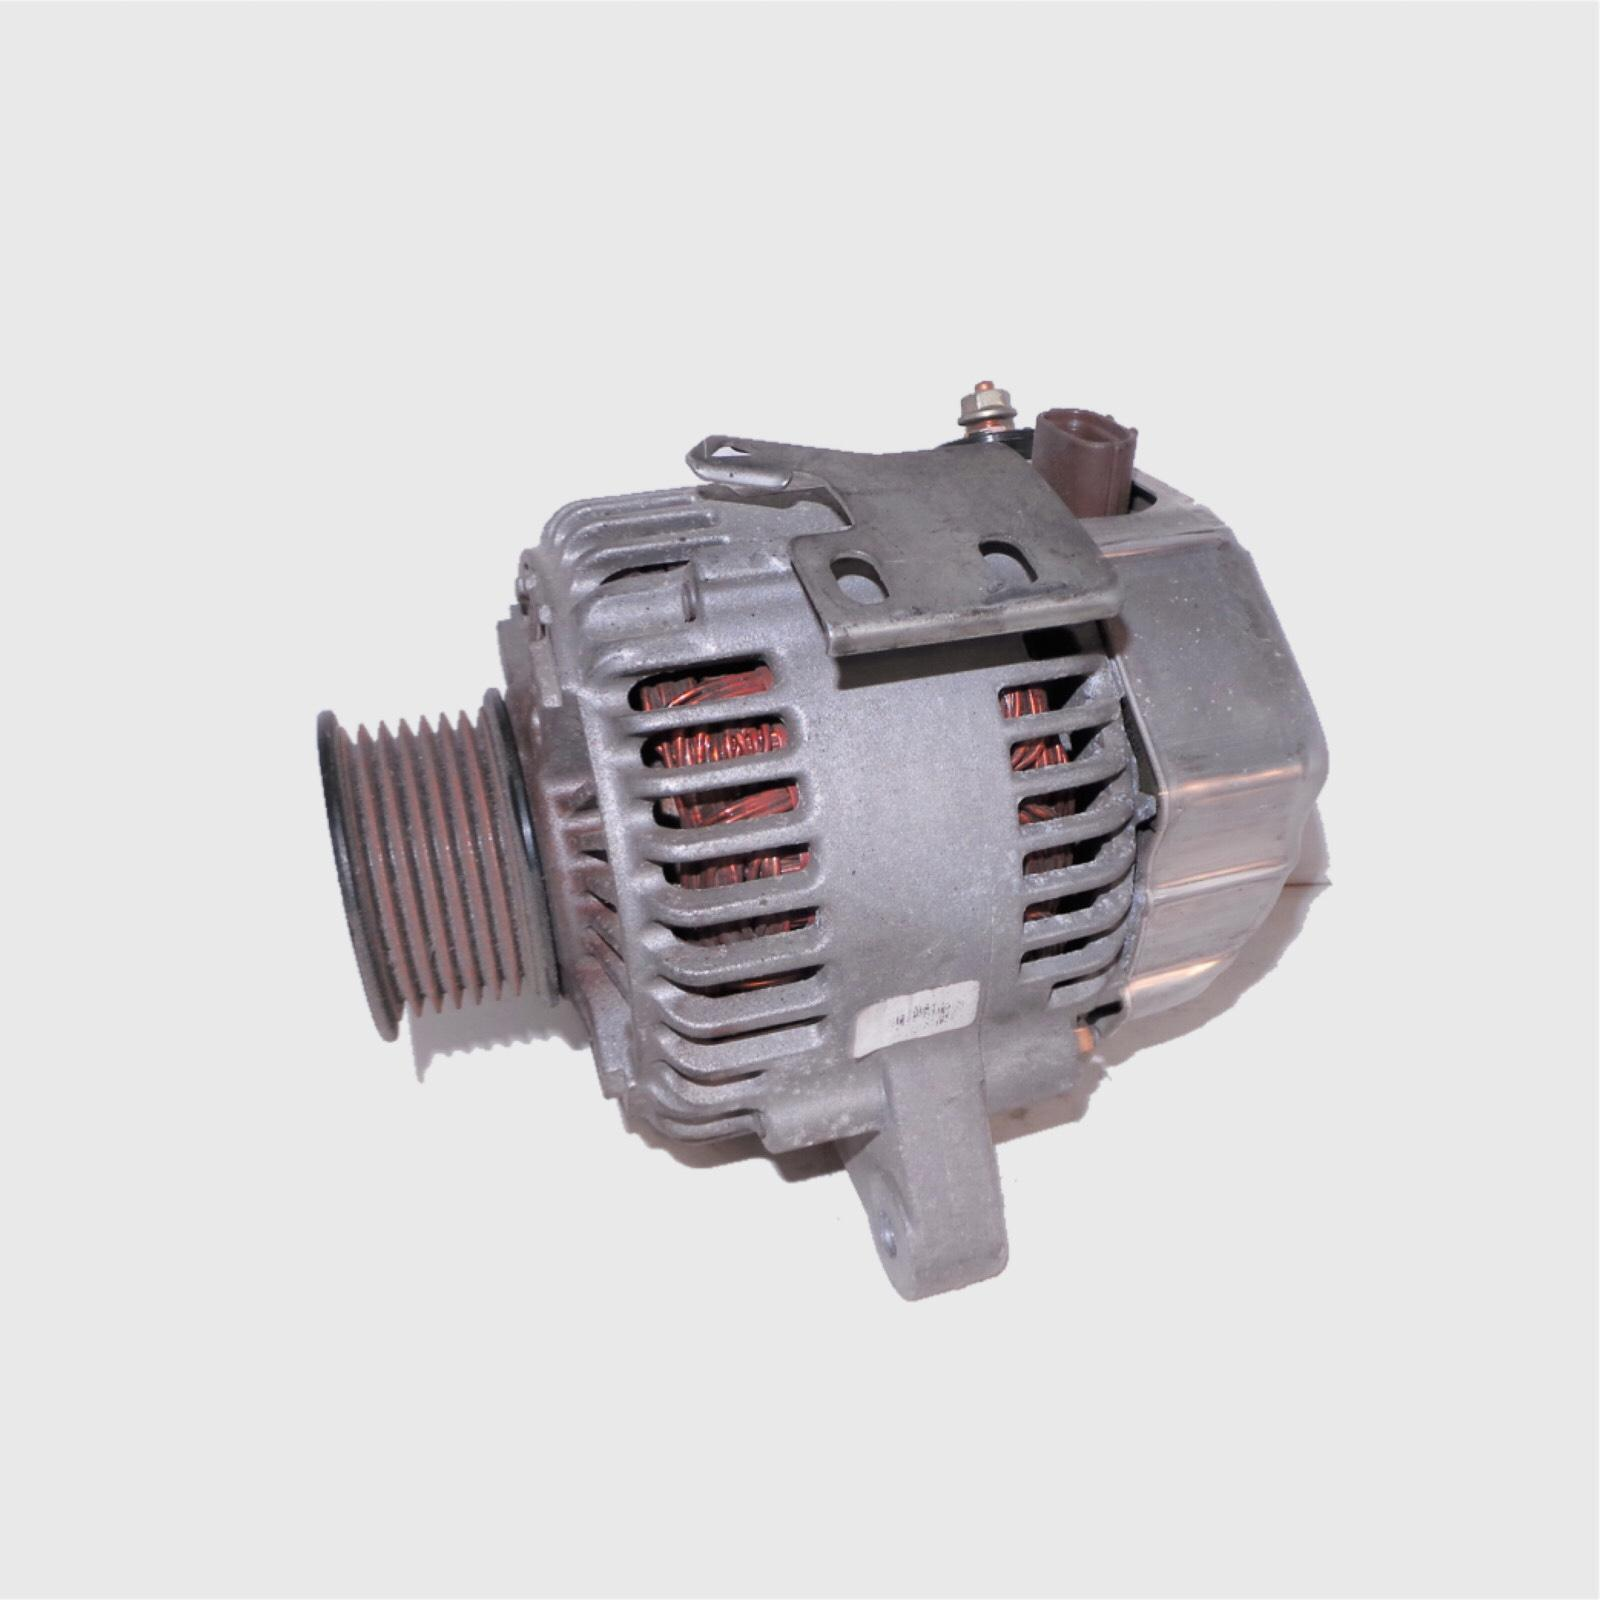 TOYOTA AVENSIS, Alternator, ACM20R (AUS ONLY) 12/01-12/10